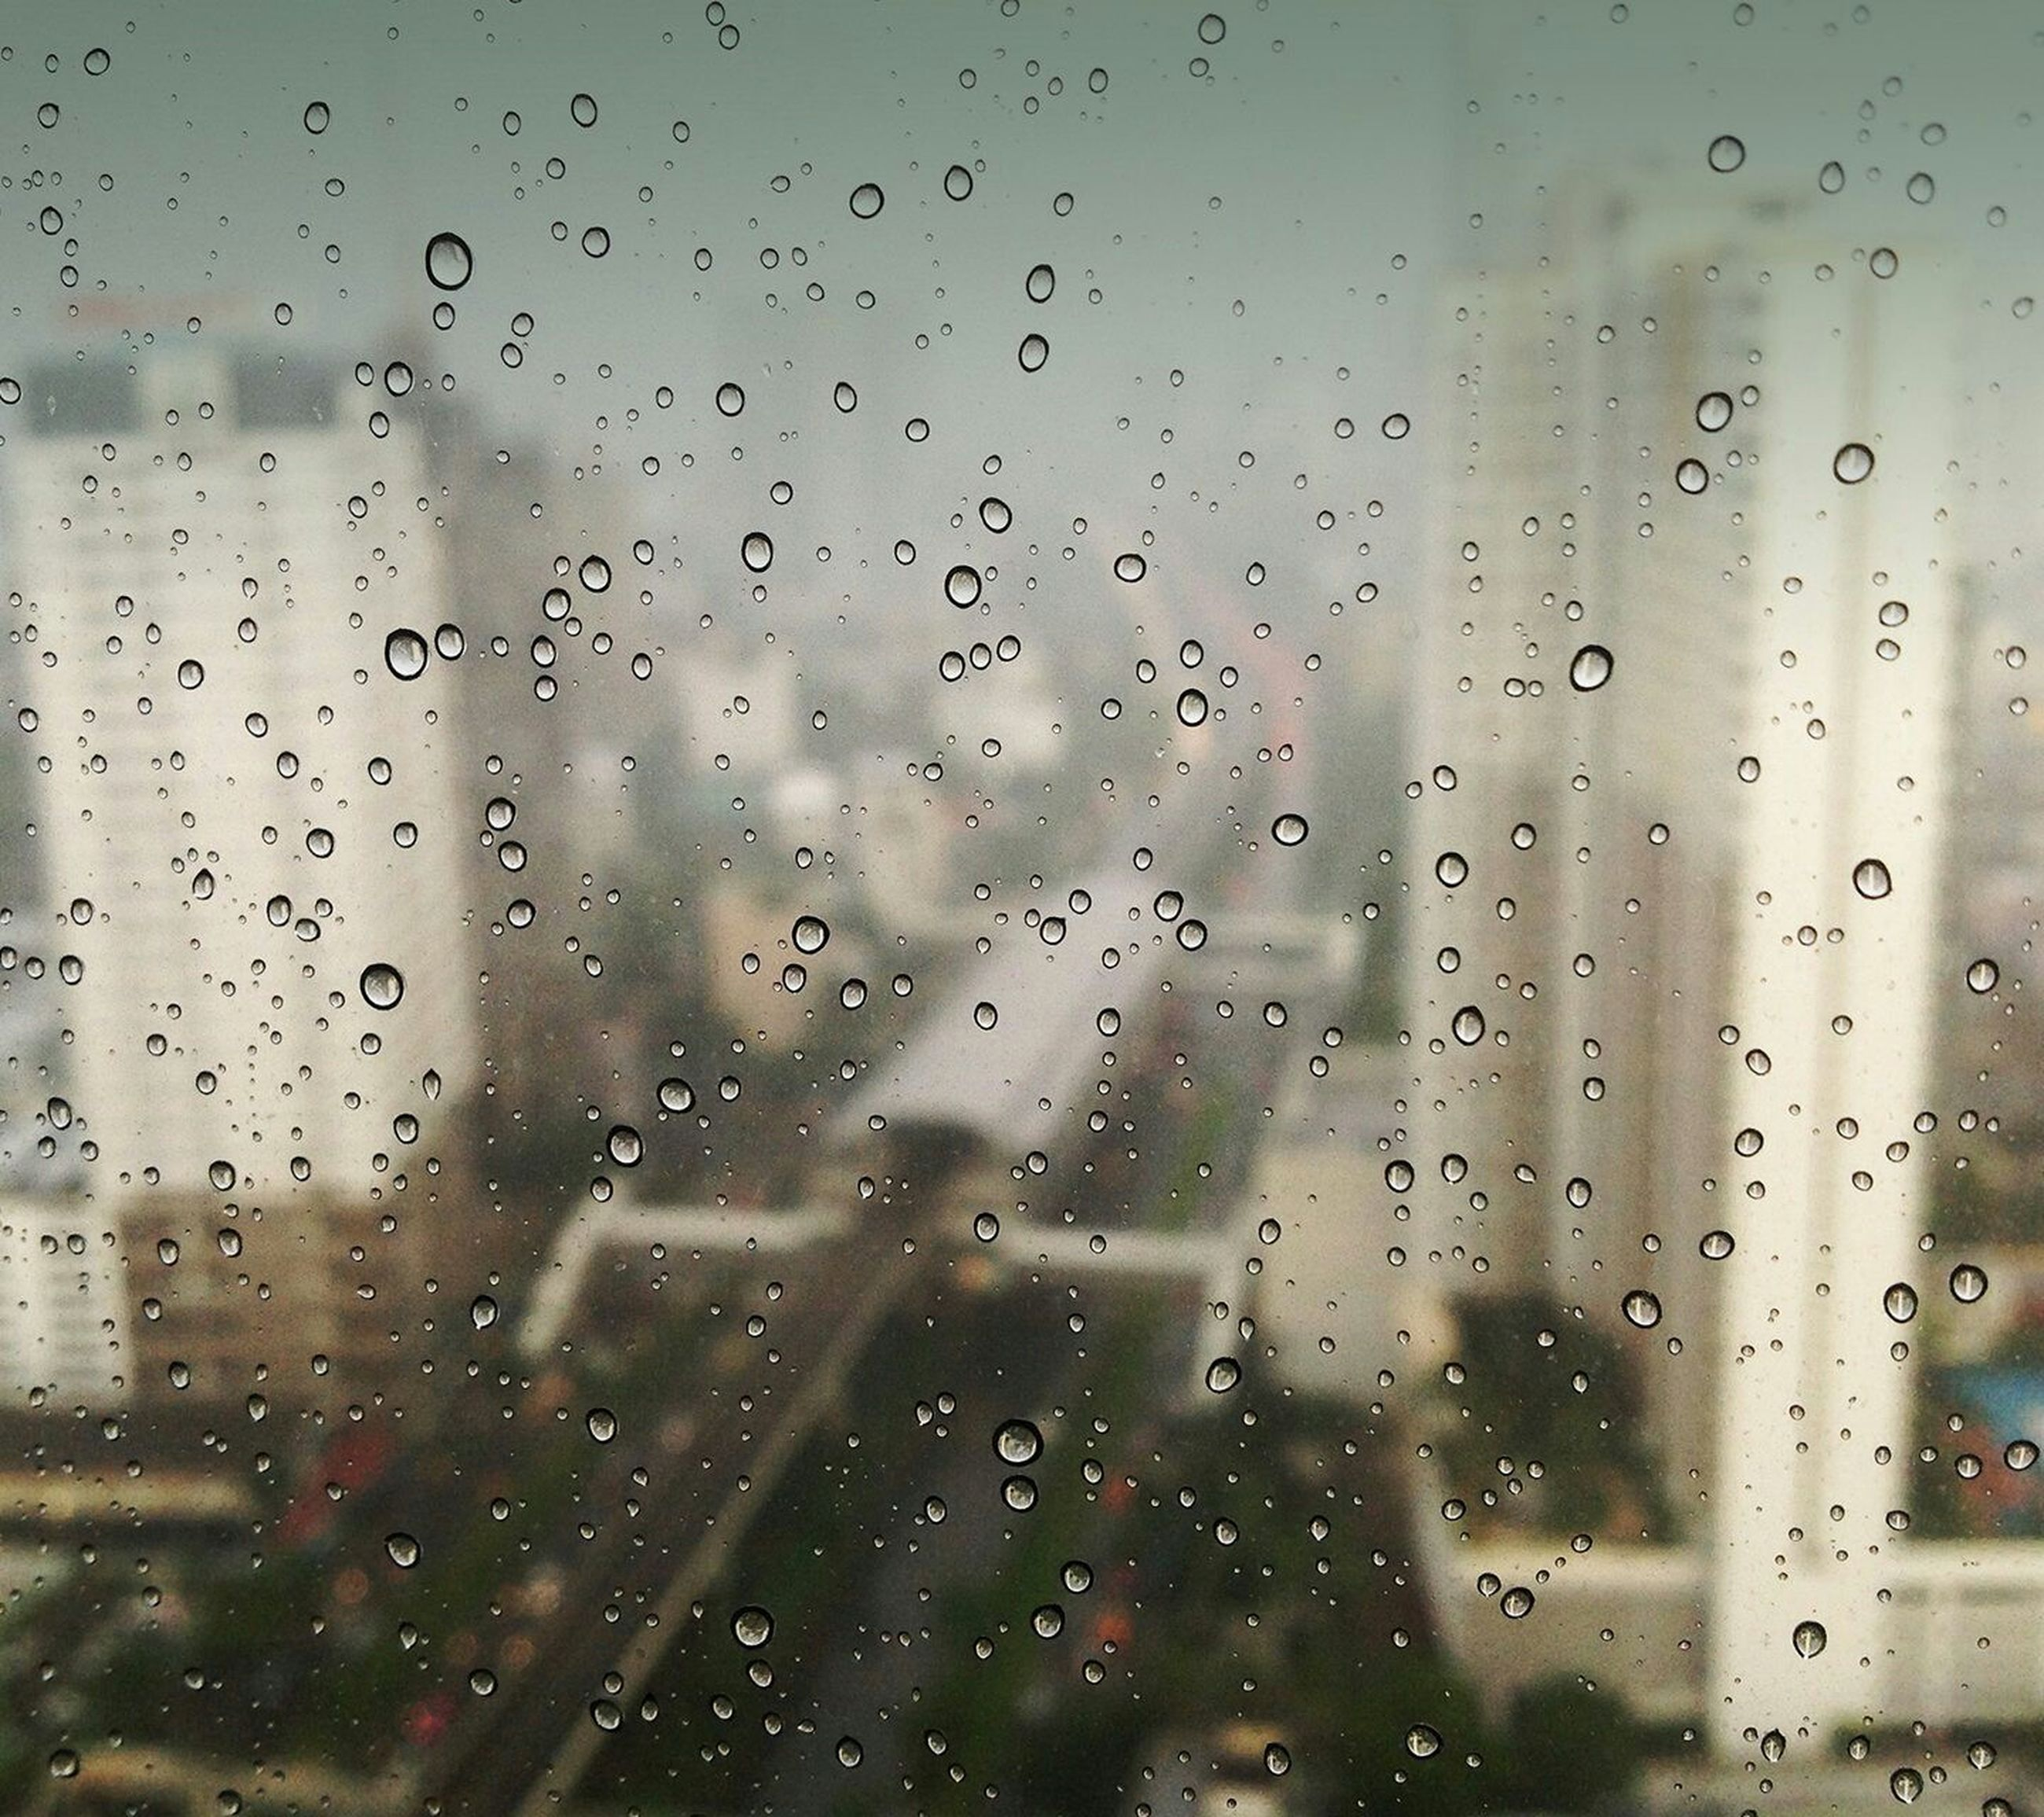 drop, wet, window, indoors, rain, transparent, glass - material, weather, raindrop, water, transportation, full frame, season, backgrounds, glass, vehicle interior, mode of transport, focus on foreground, car, monsoon